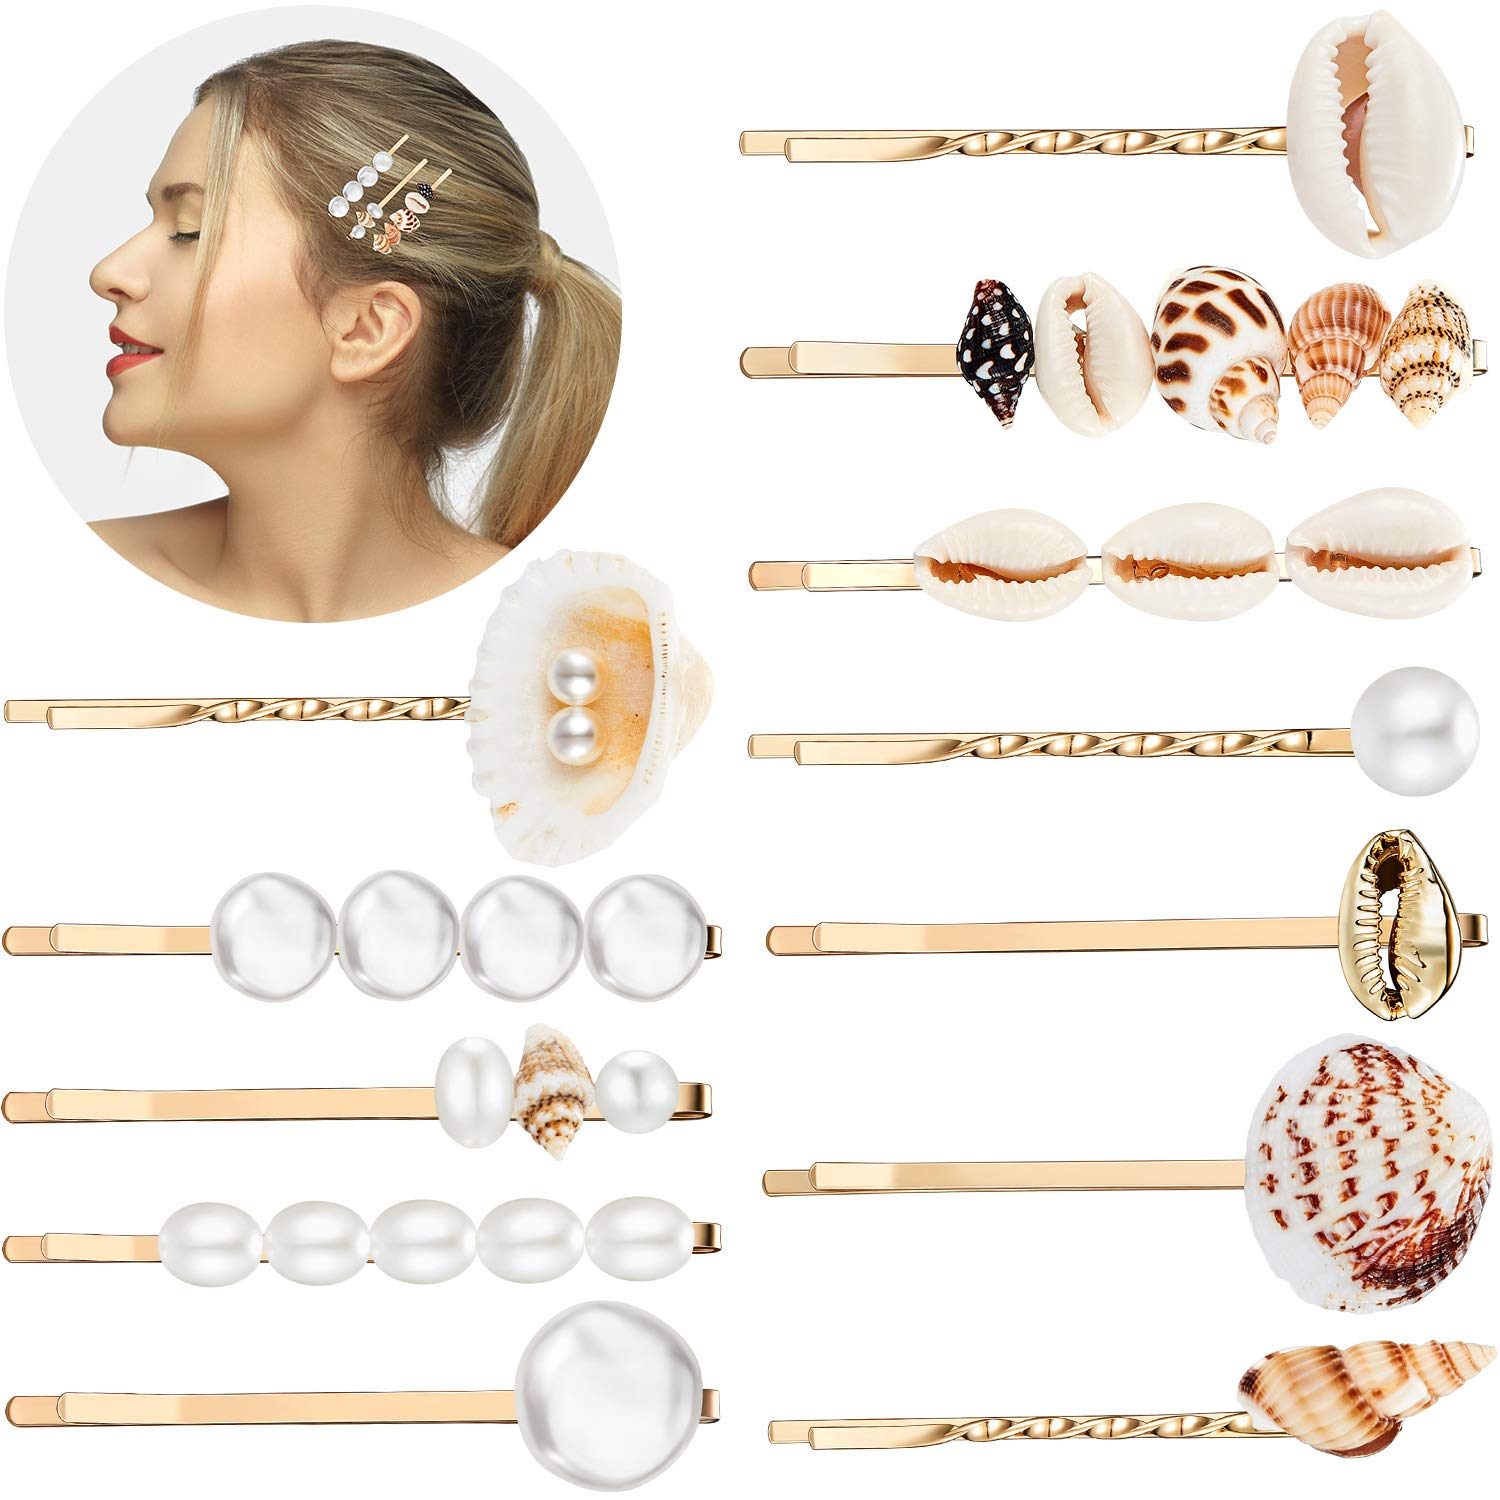 12 Pieces Faux Pearl Hair Clip Shell Barrettes Conch Pearl Hairpins Side Bangs beach seashell Hair Barrettes bobby pin for Women and Girls by WILLBOND